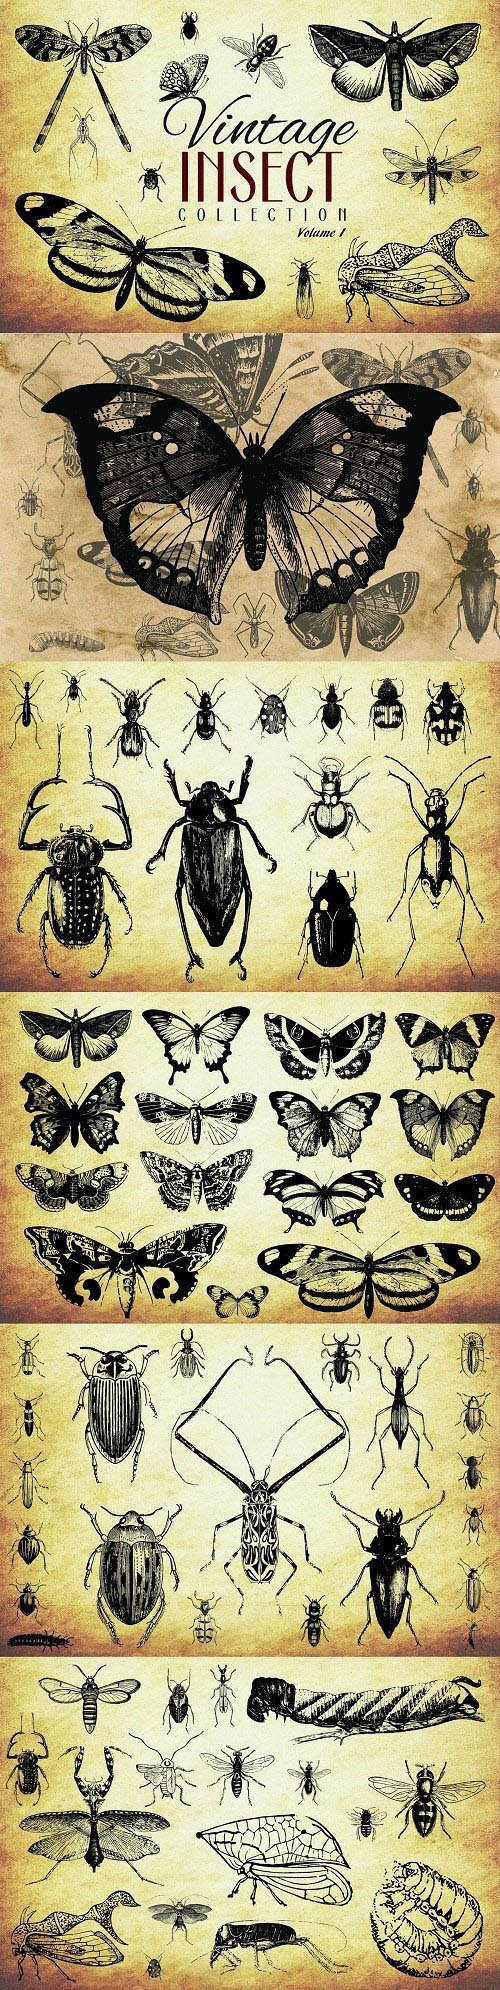 CM - 200 Vintage Insect Vector Collection - Vol.1